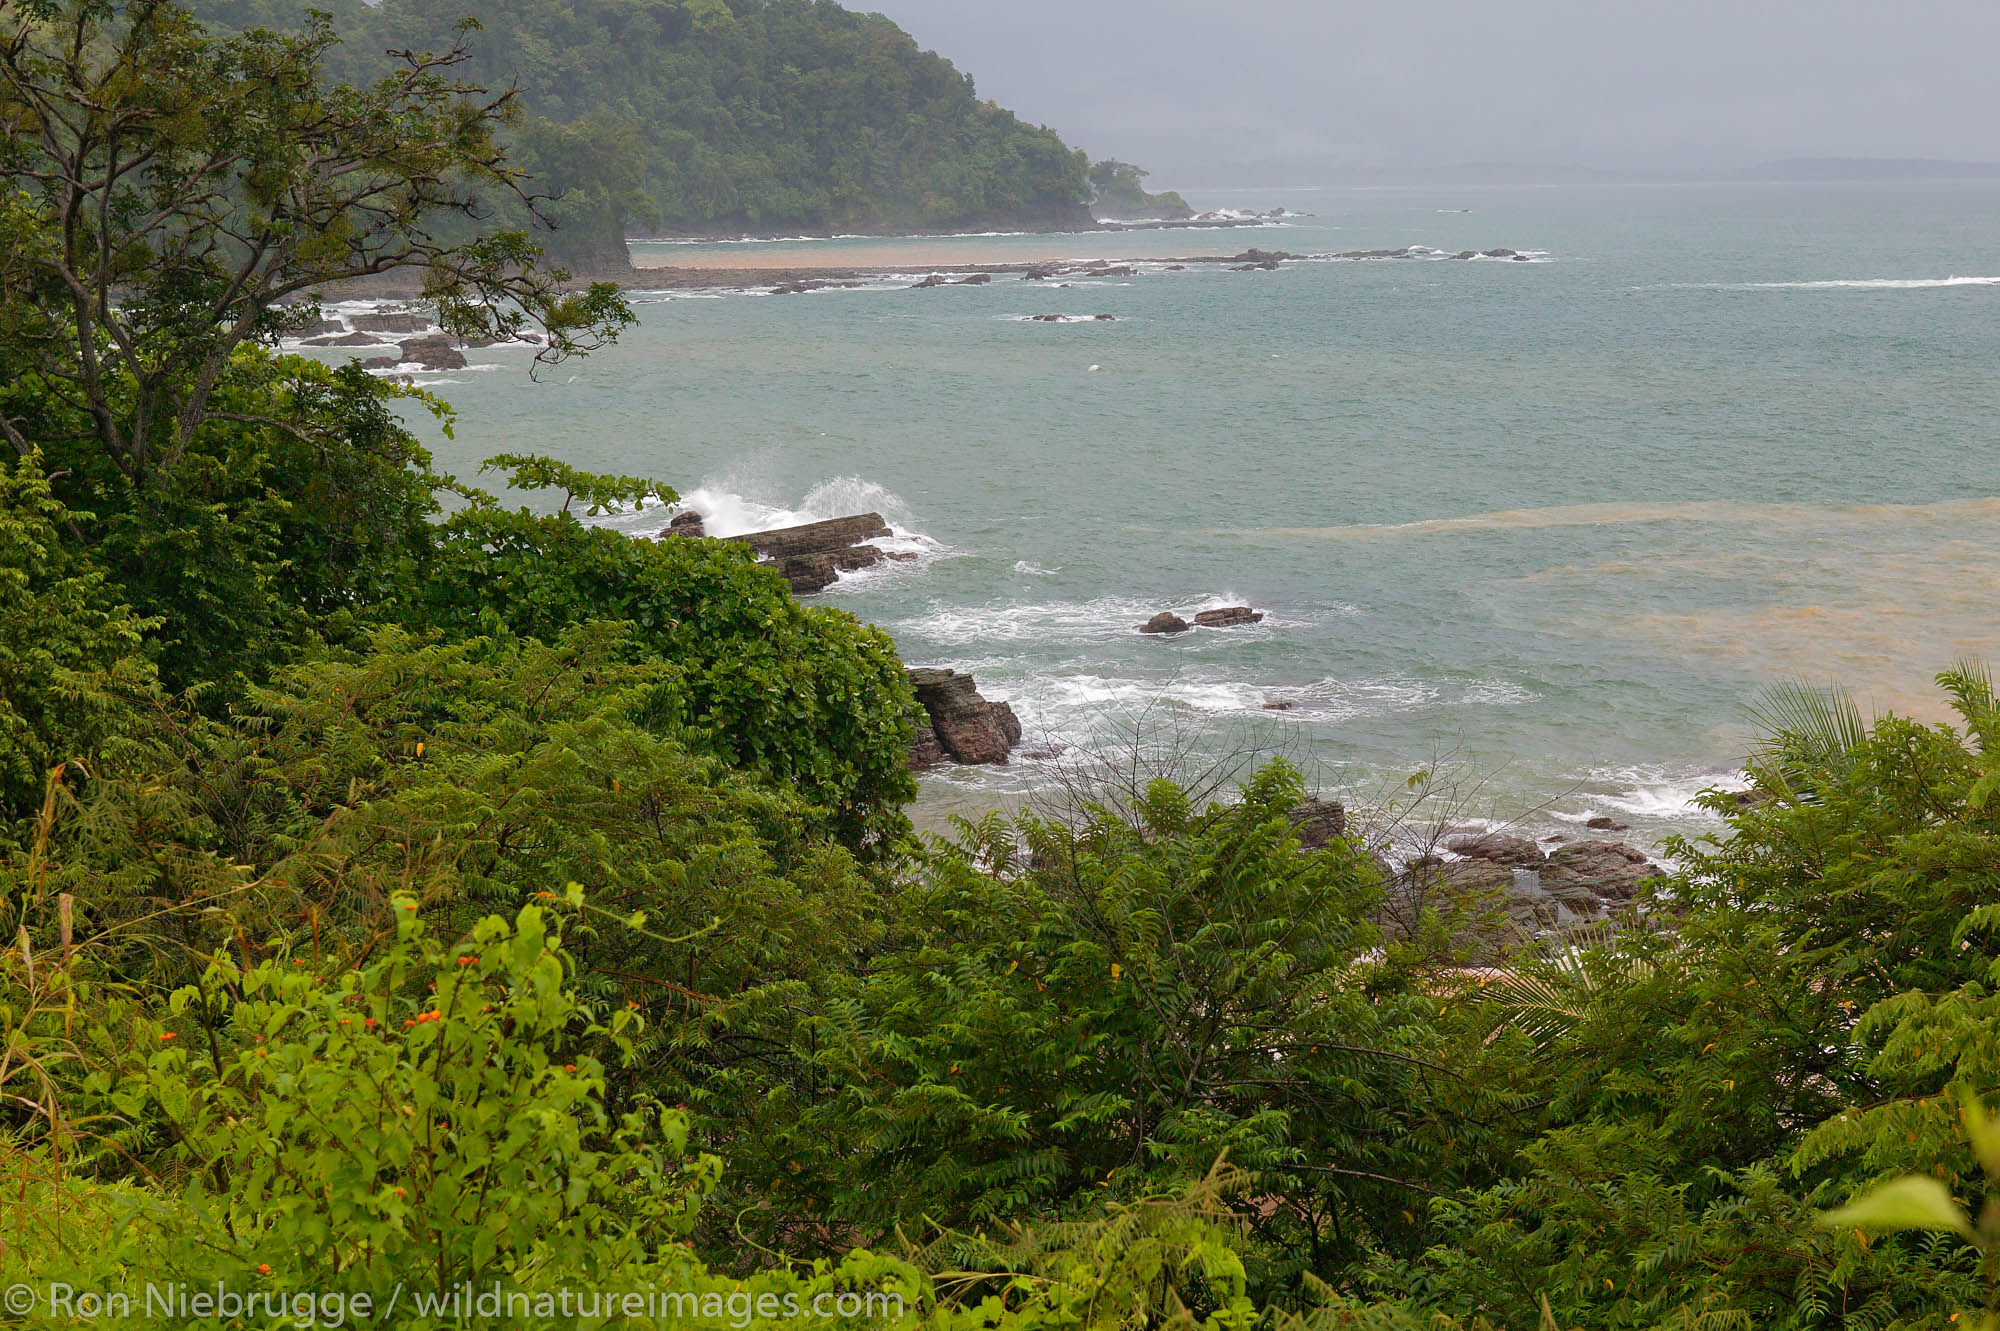 The coastline just south of Dominical, Costa Rica.